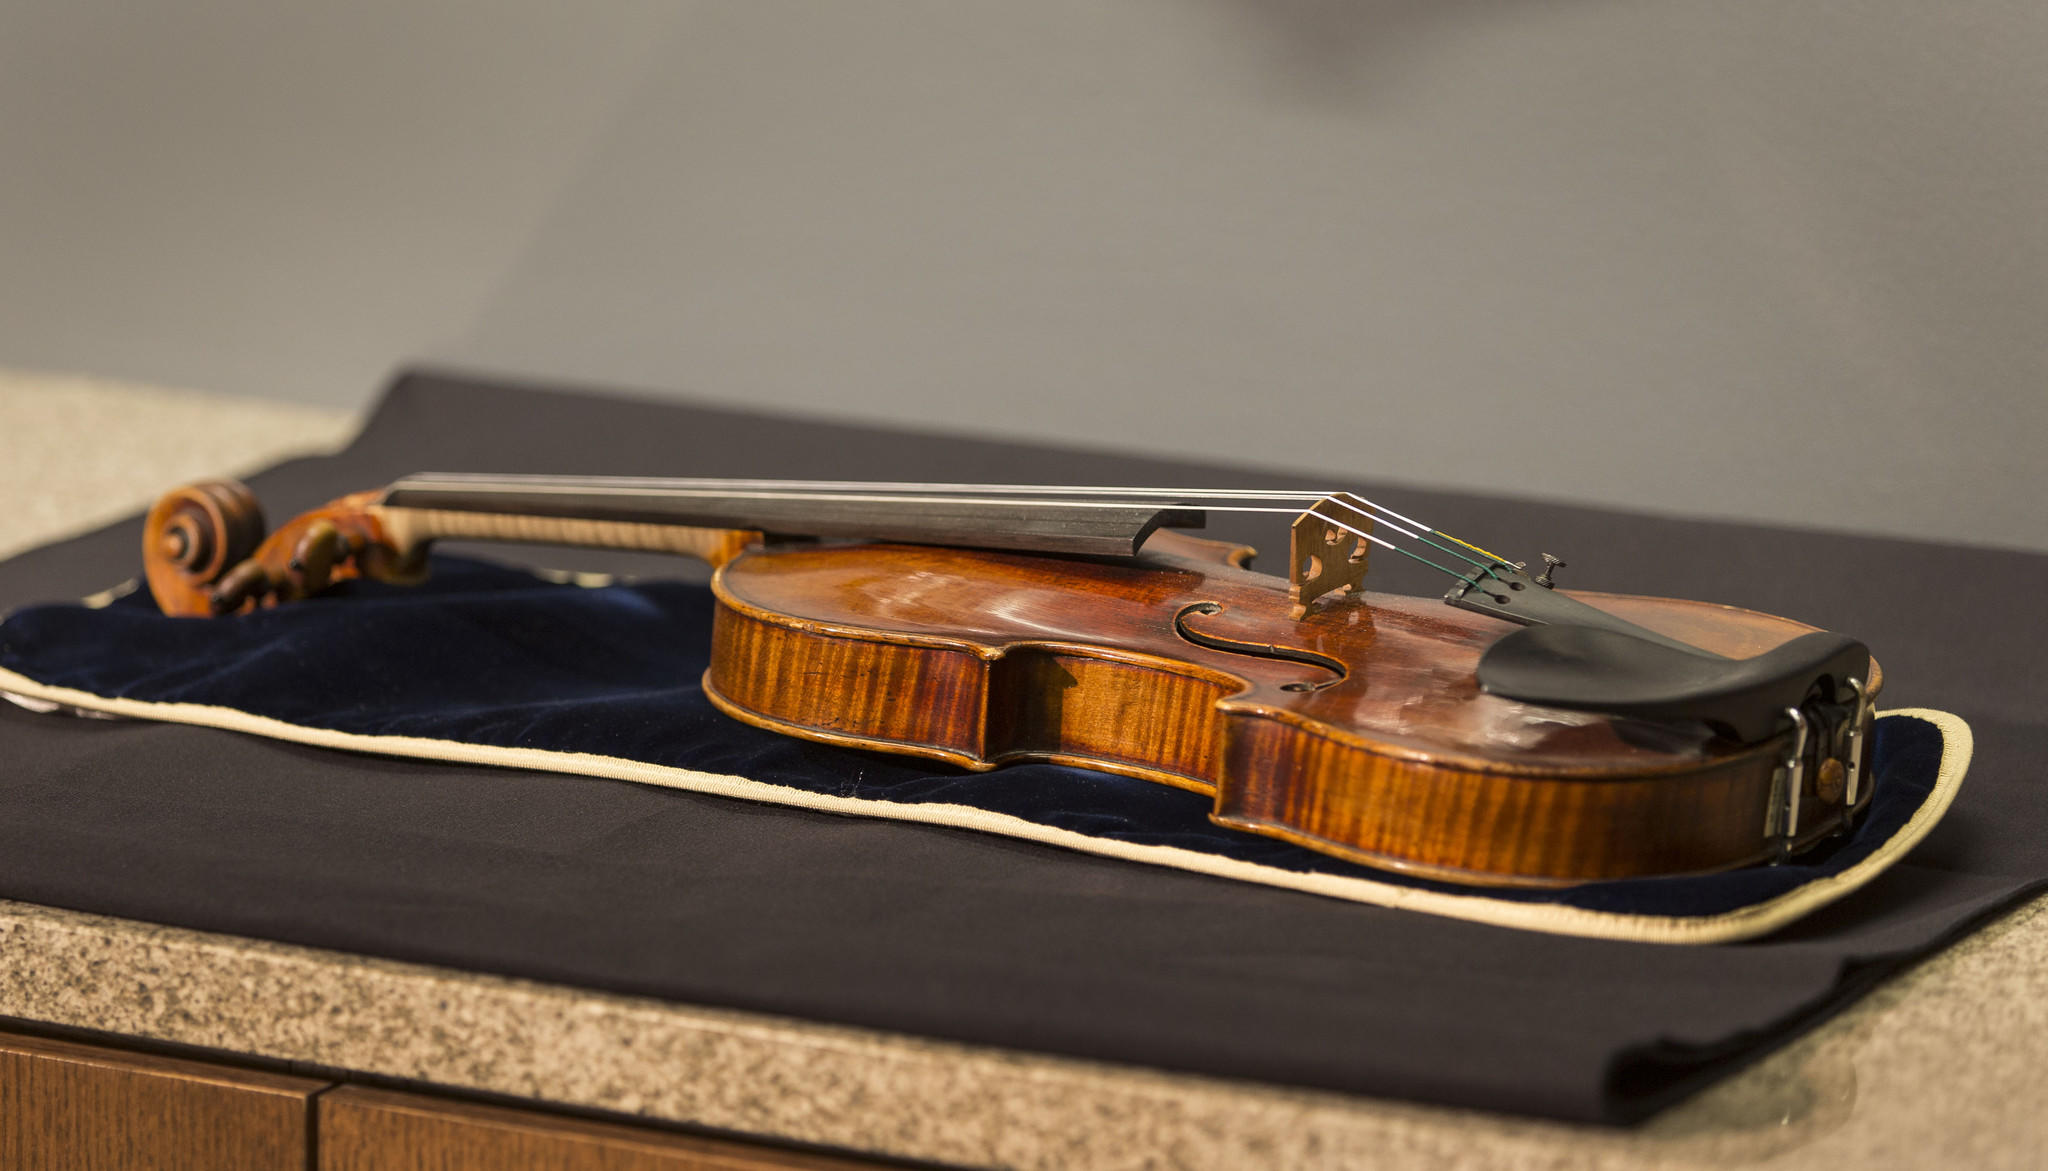 A 300-year-old Stradivarius violin.